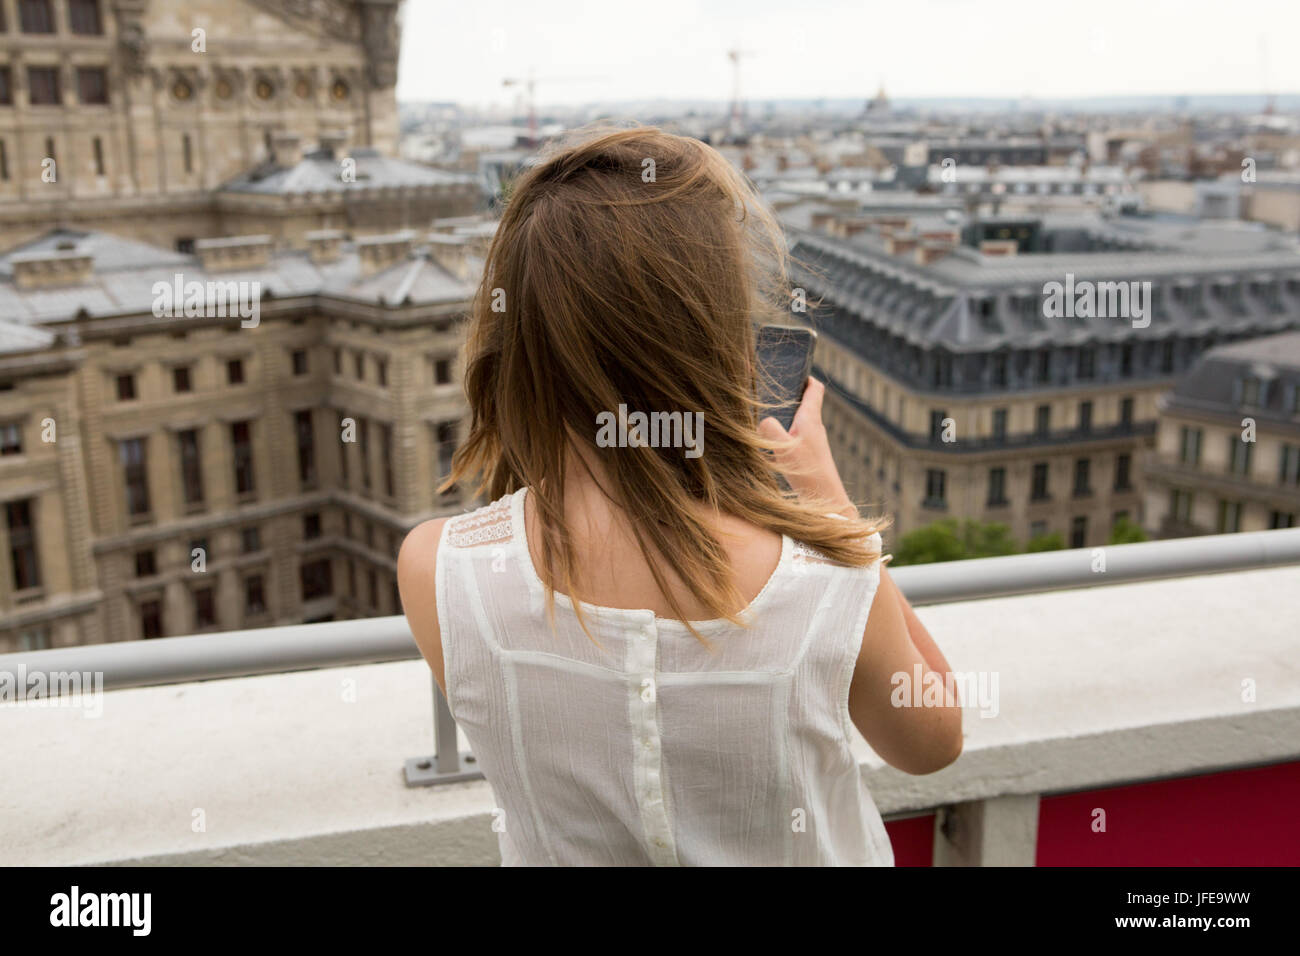 A girl photographs the Paris Opera House, Garnier Palace, and the city landscape. - Stock Image